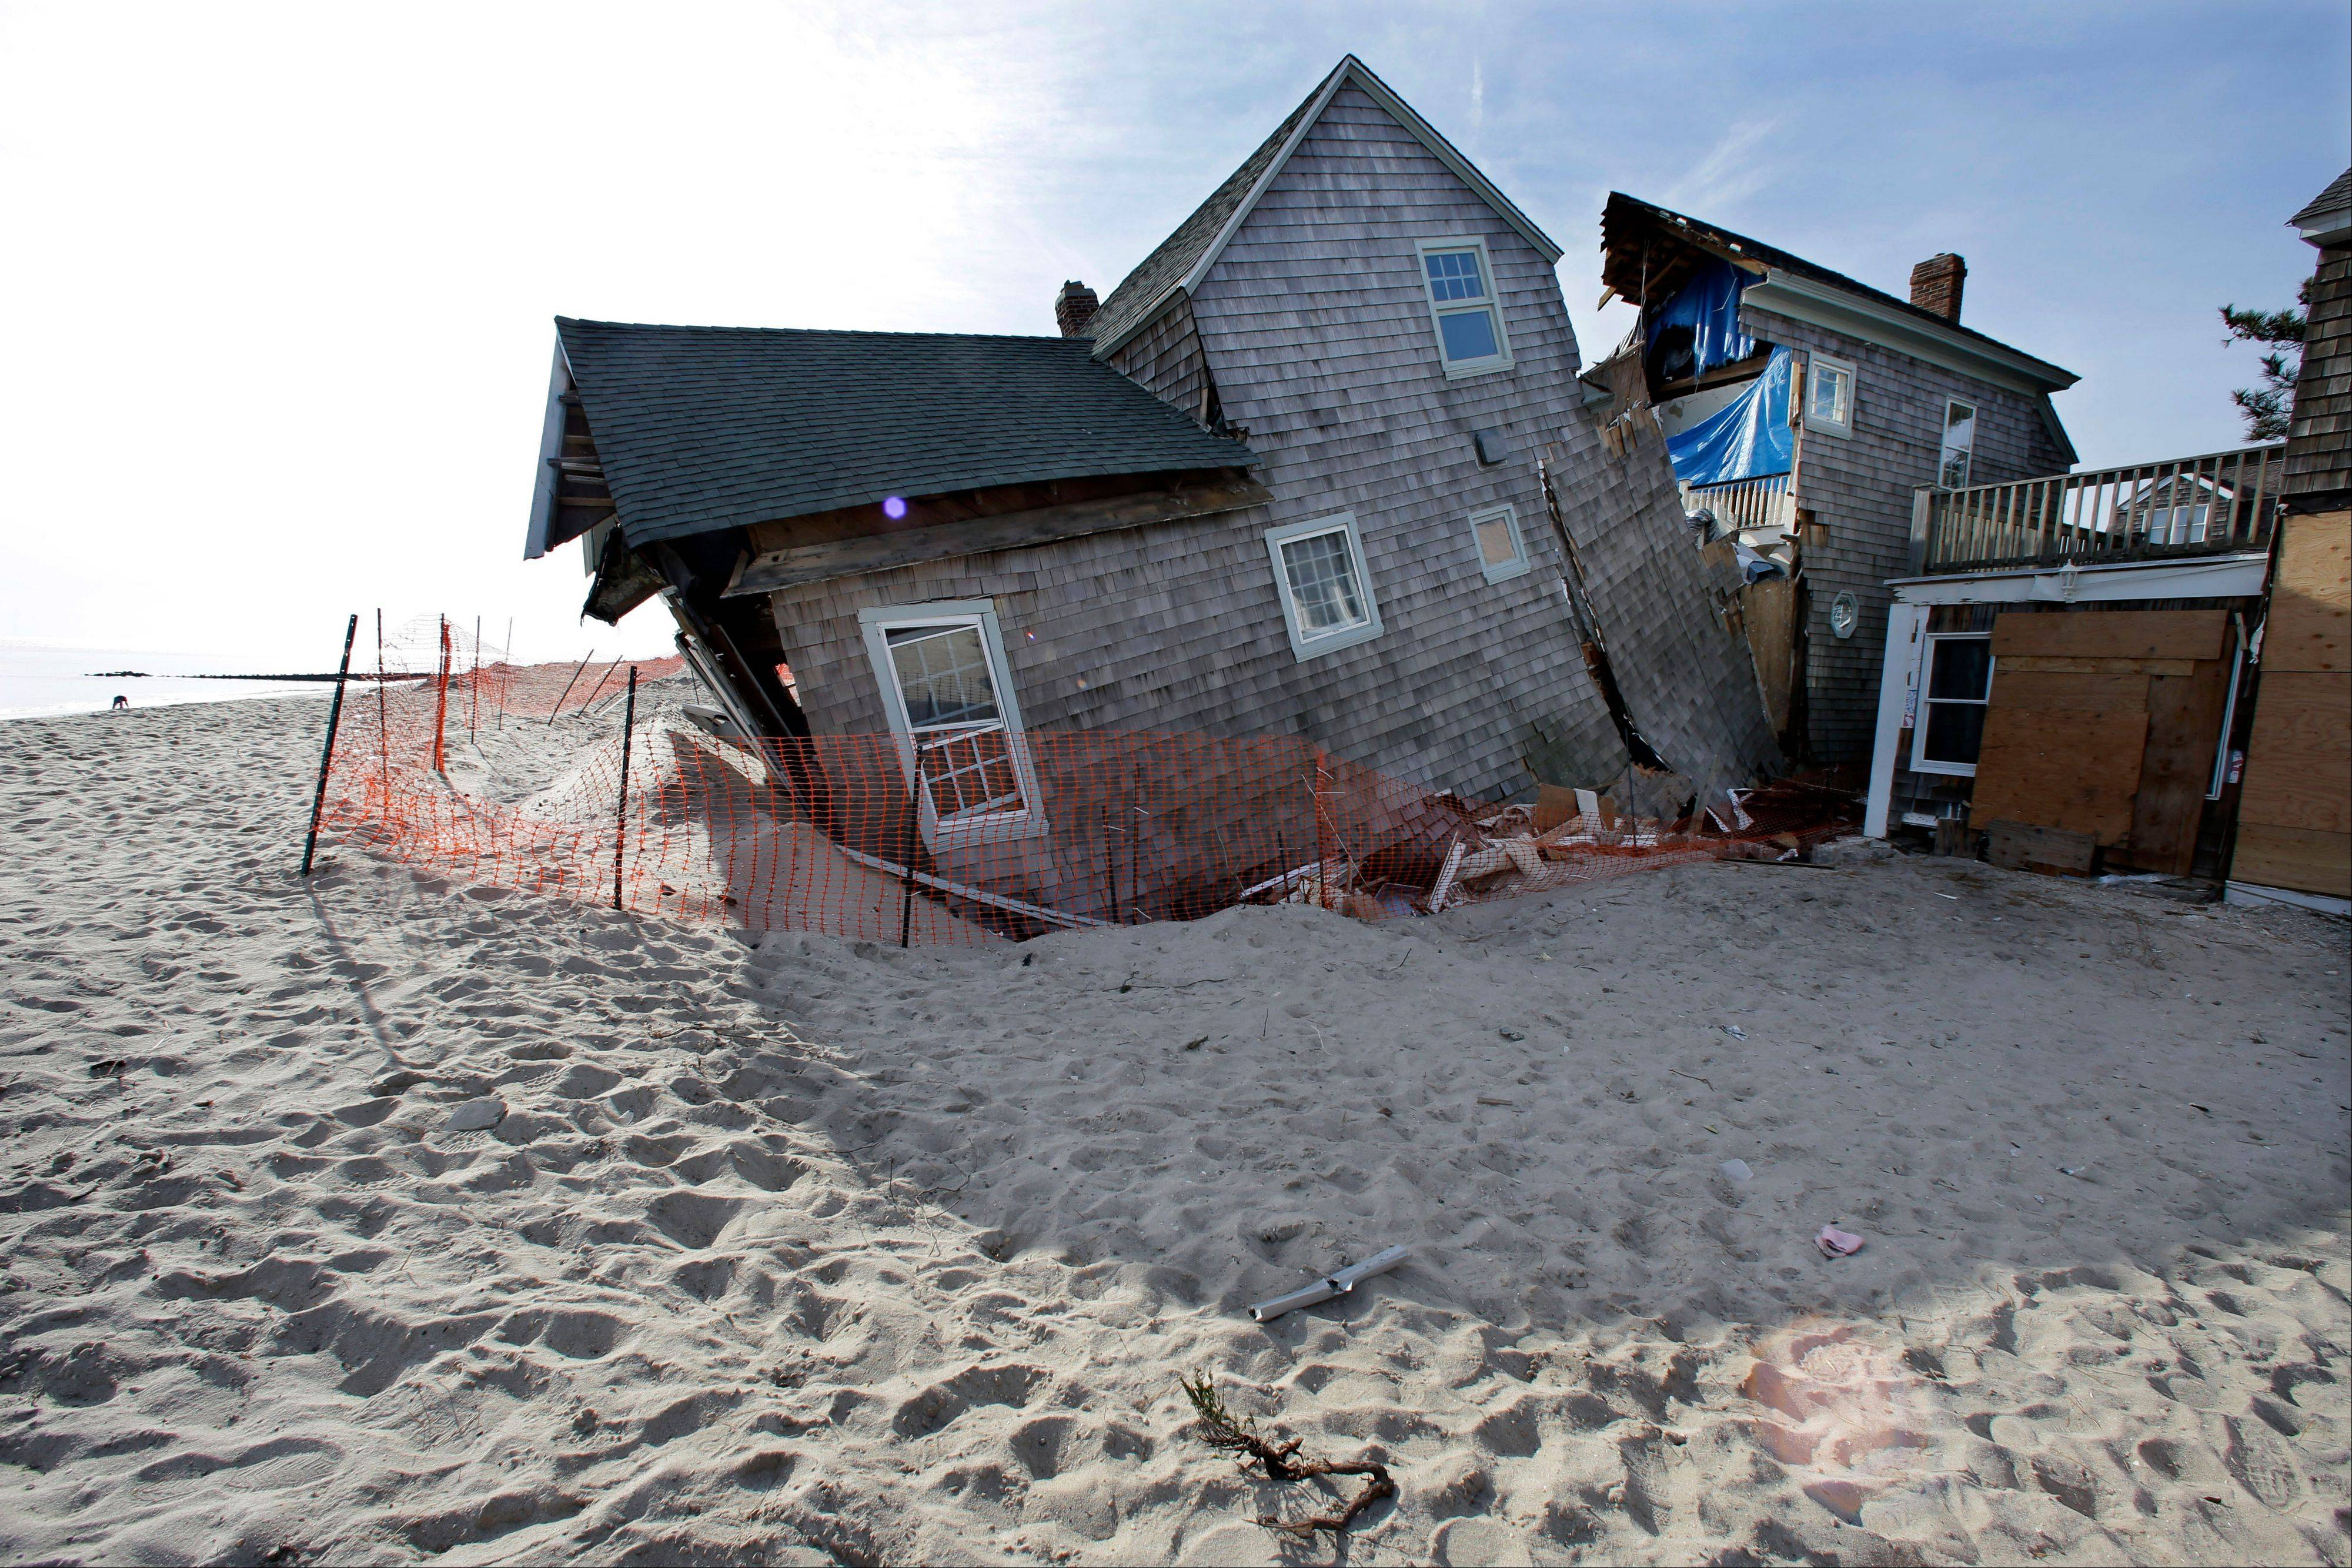 A beach front home that was severely damaged by Superstorm Sandy in the sand in Bay Head, N.J.